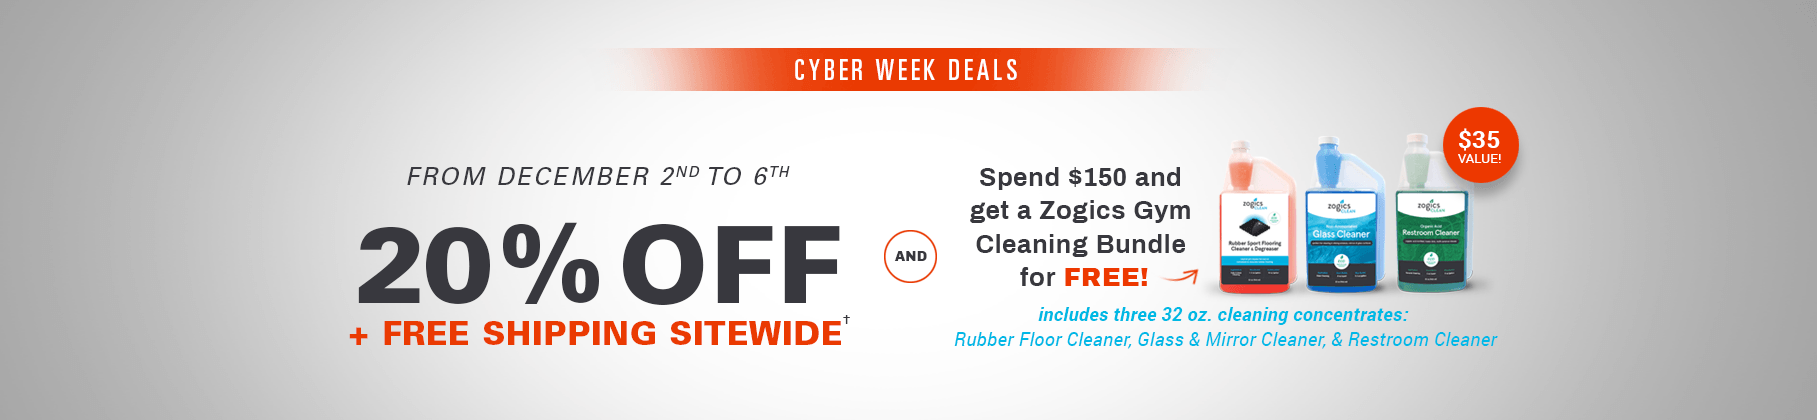 20% off plus Free Shipping sitewide - Zogics Cyber Week Deals